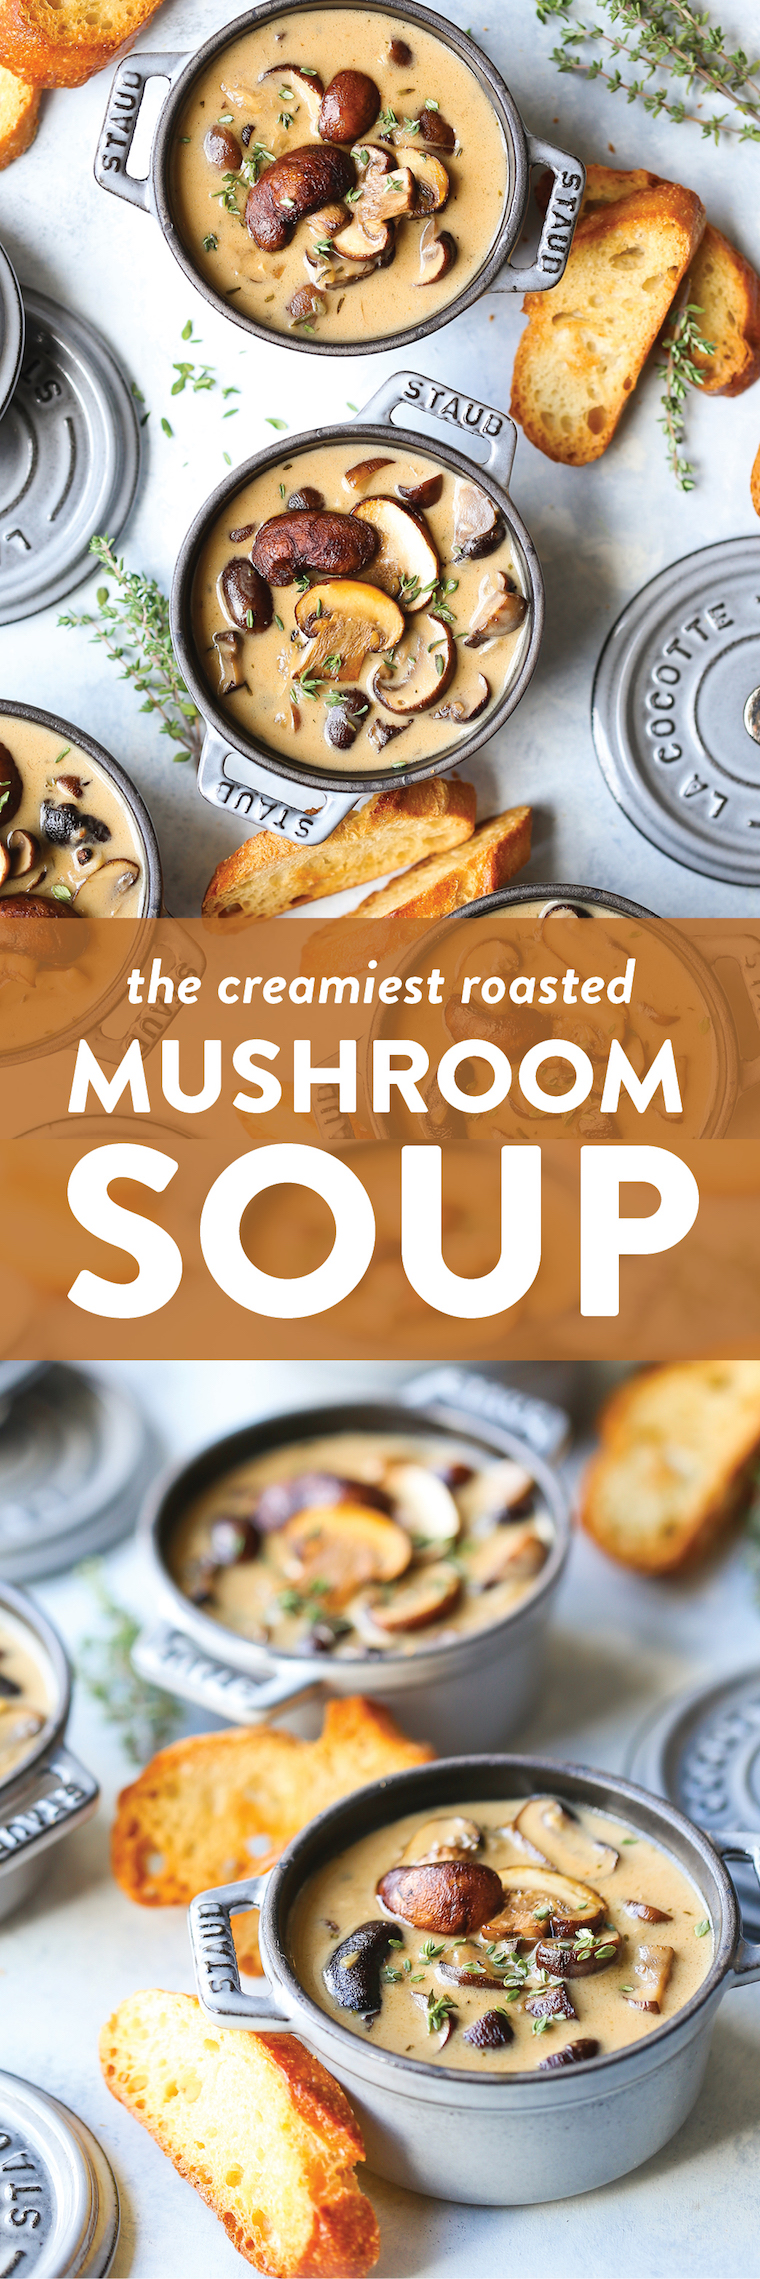 Creamy Roasted Mushroom Soup - So creamy, so rich, so hearty and so comforting! The secret to this soup is roasting the mushrooms in garlic and fresh thyme!